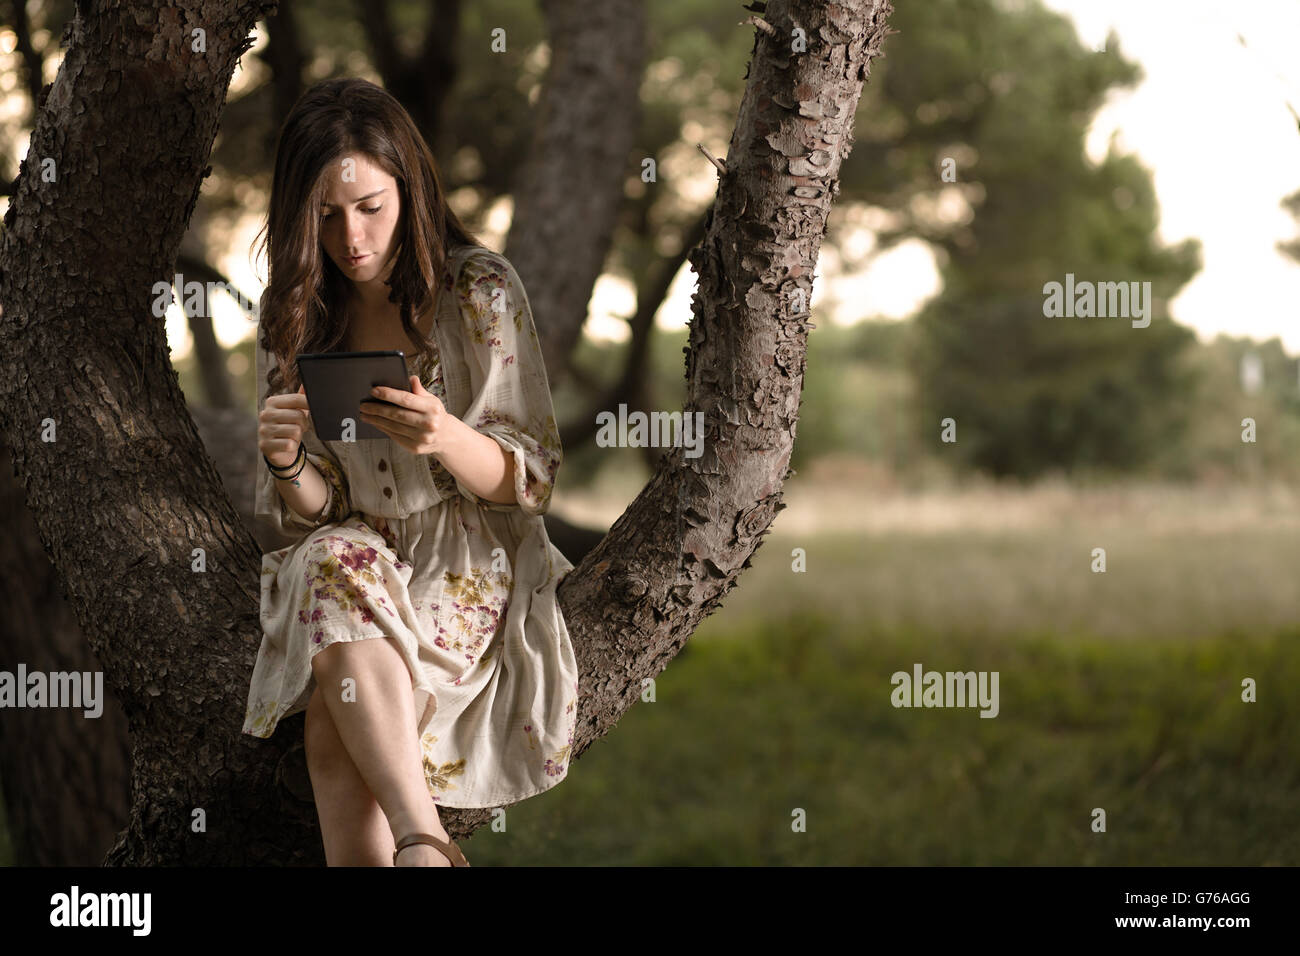 Woman with Tablet Sitting on a Pine Tree in a Park - Stock Image